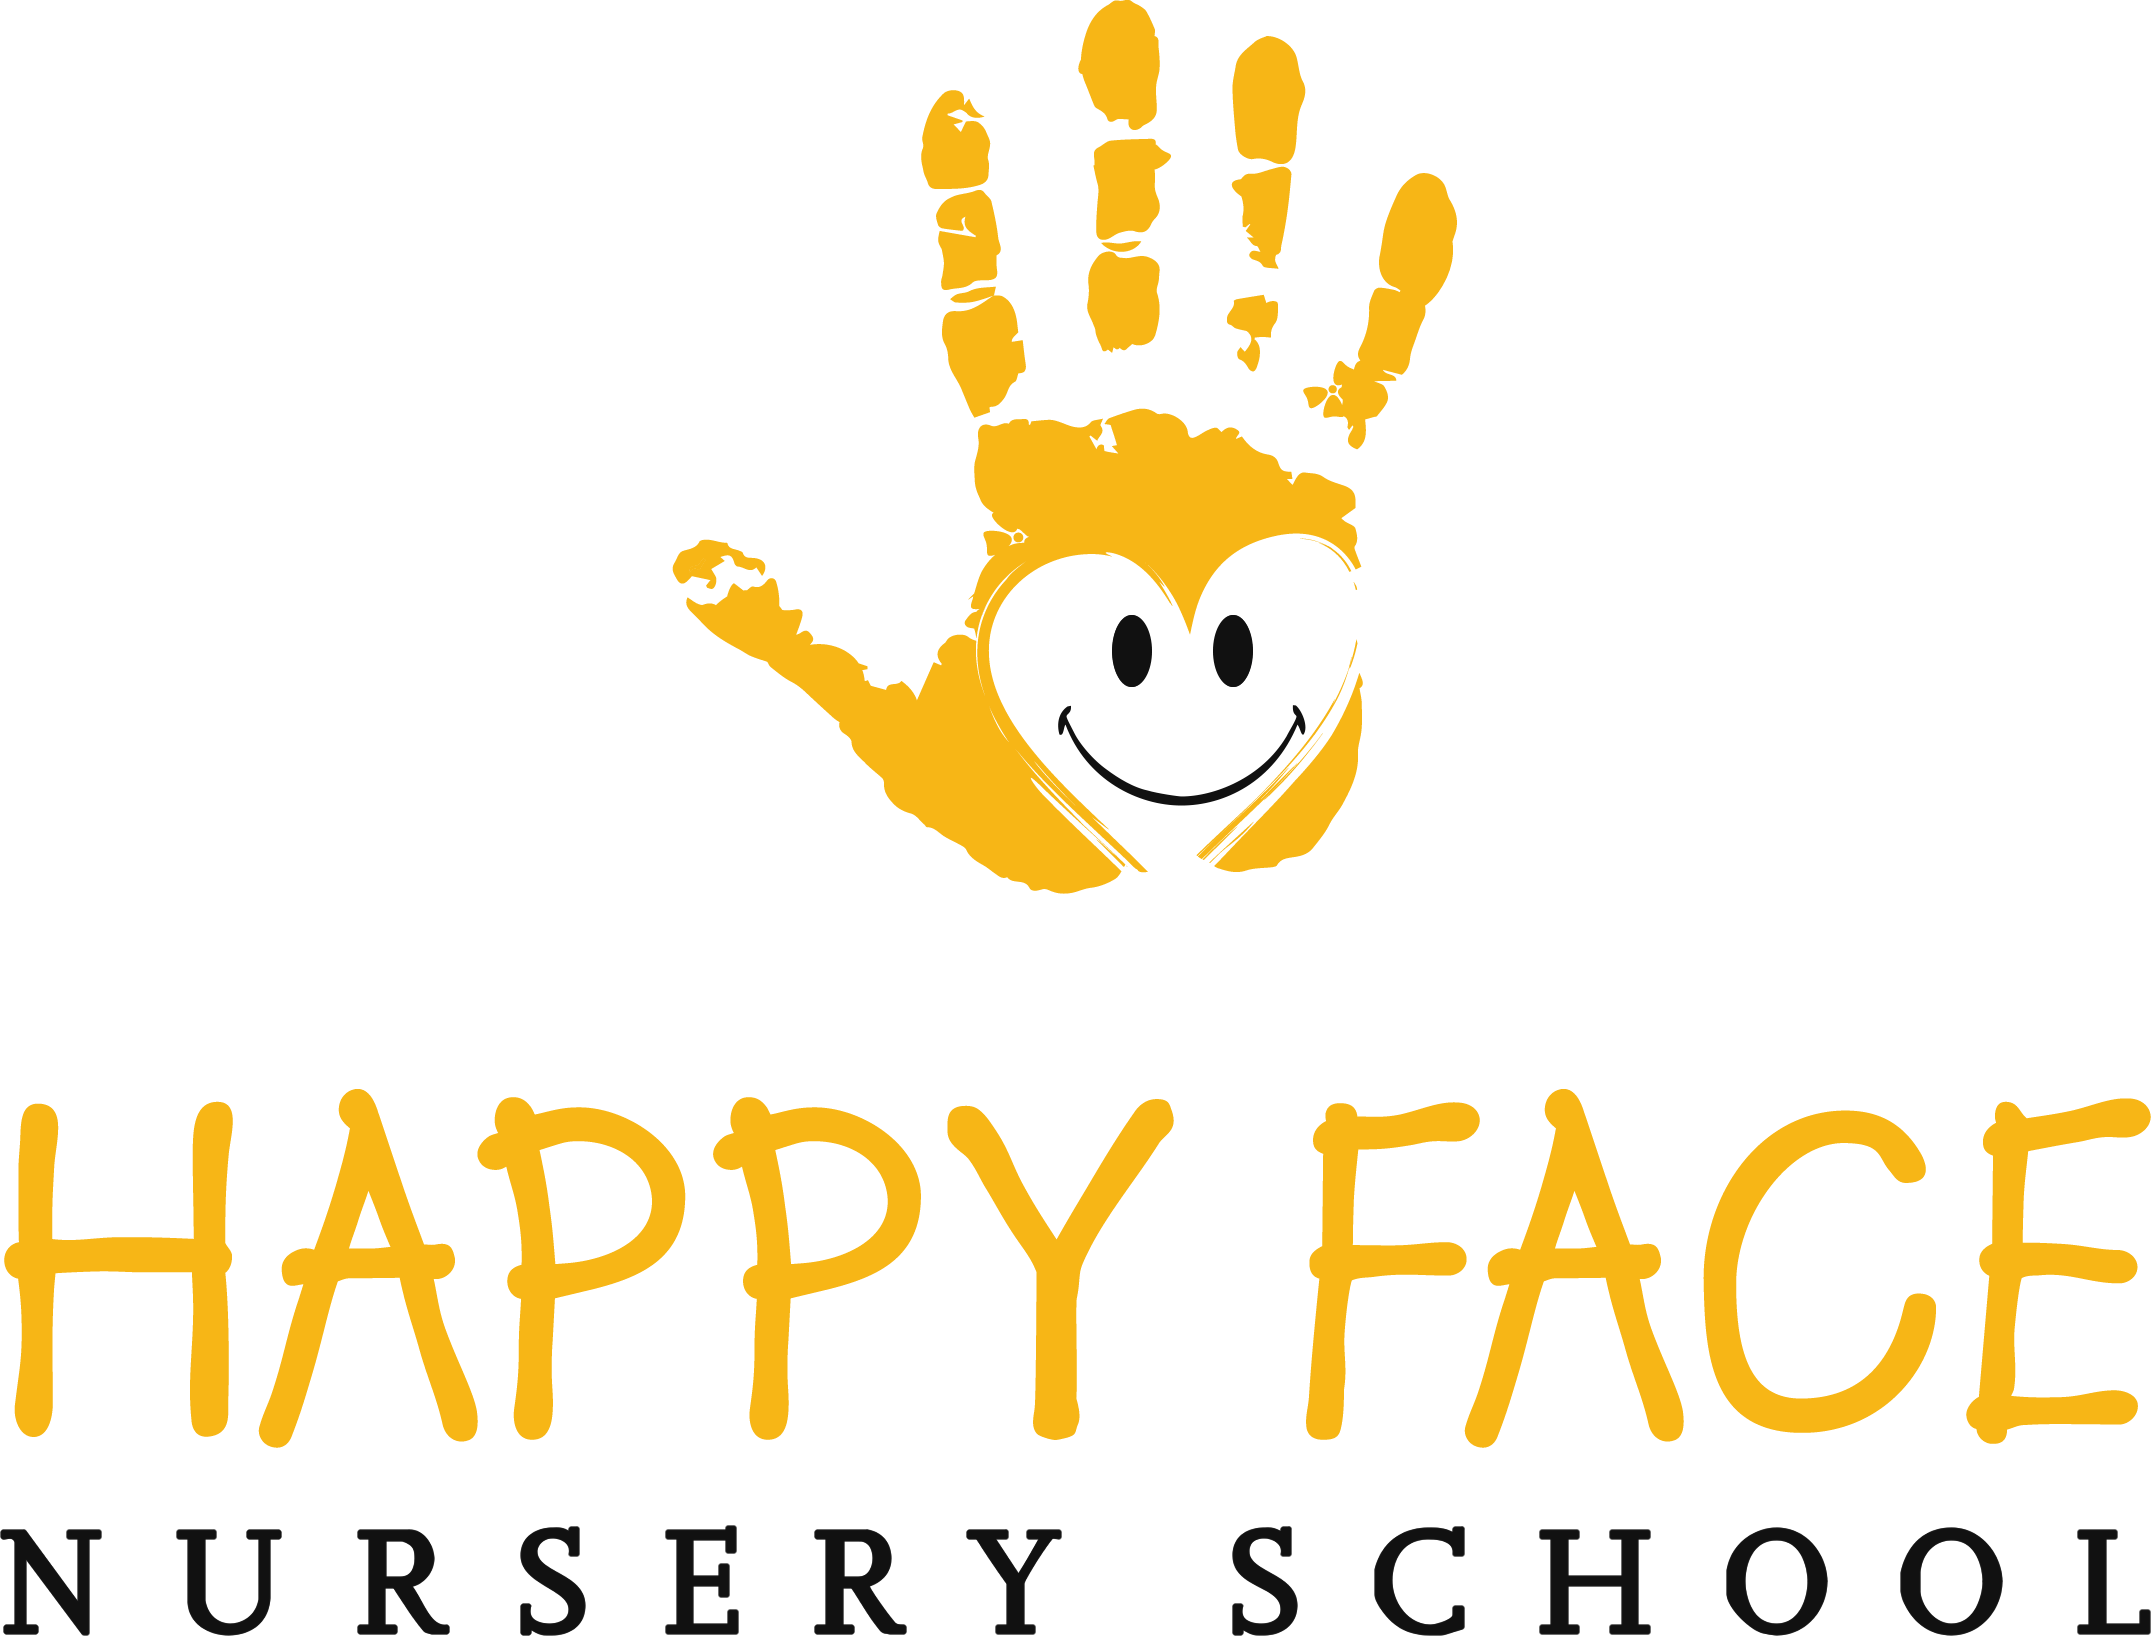 Happyface Nursery School